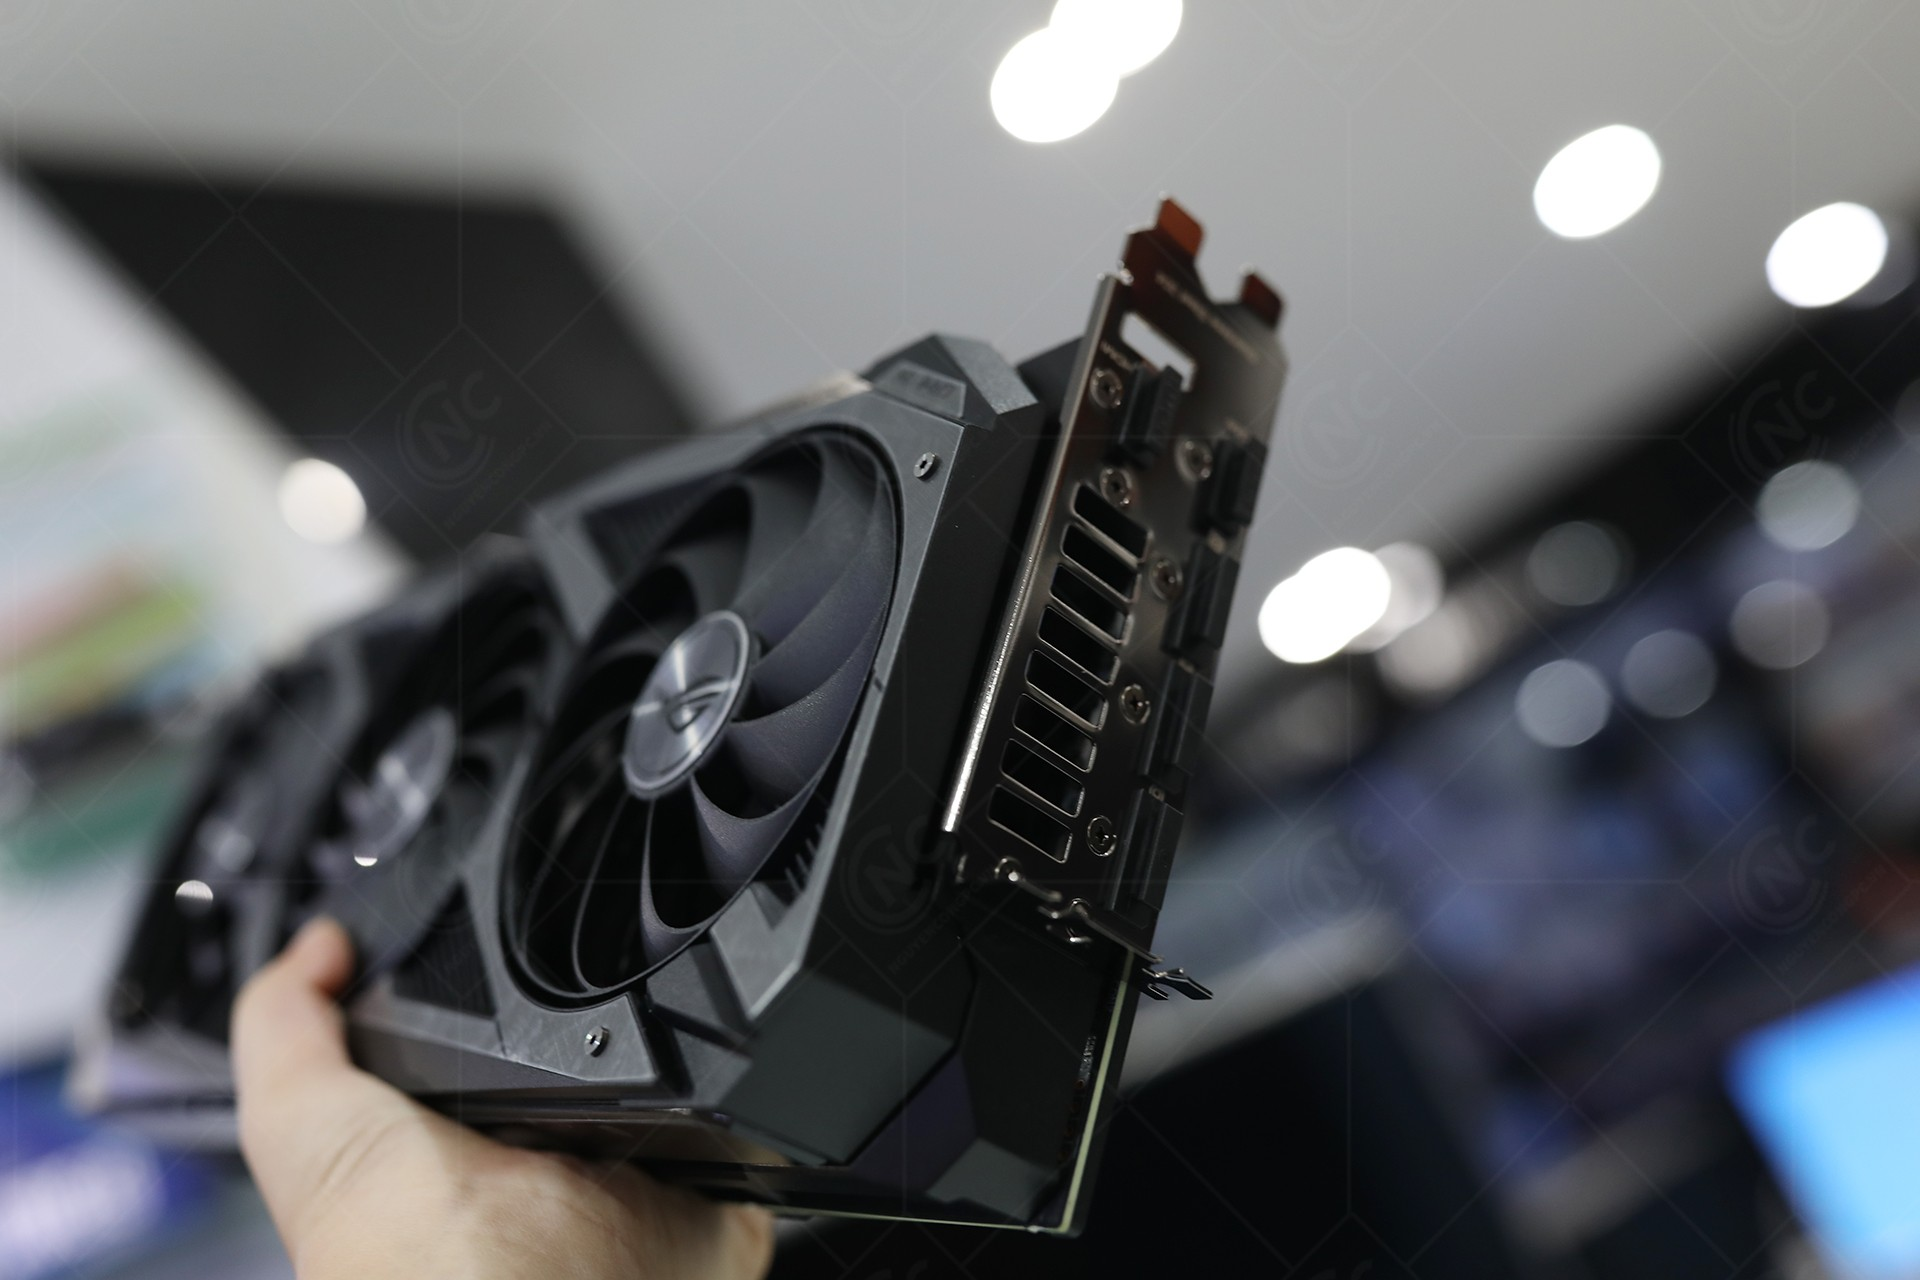 vga-asus-rog-strix-rtx-3080-oc-edition-10g-gaming-2